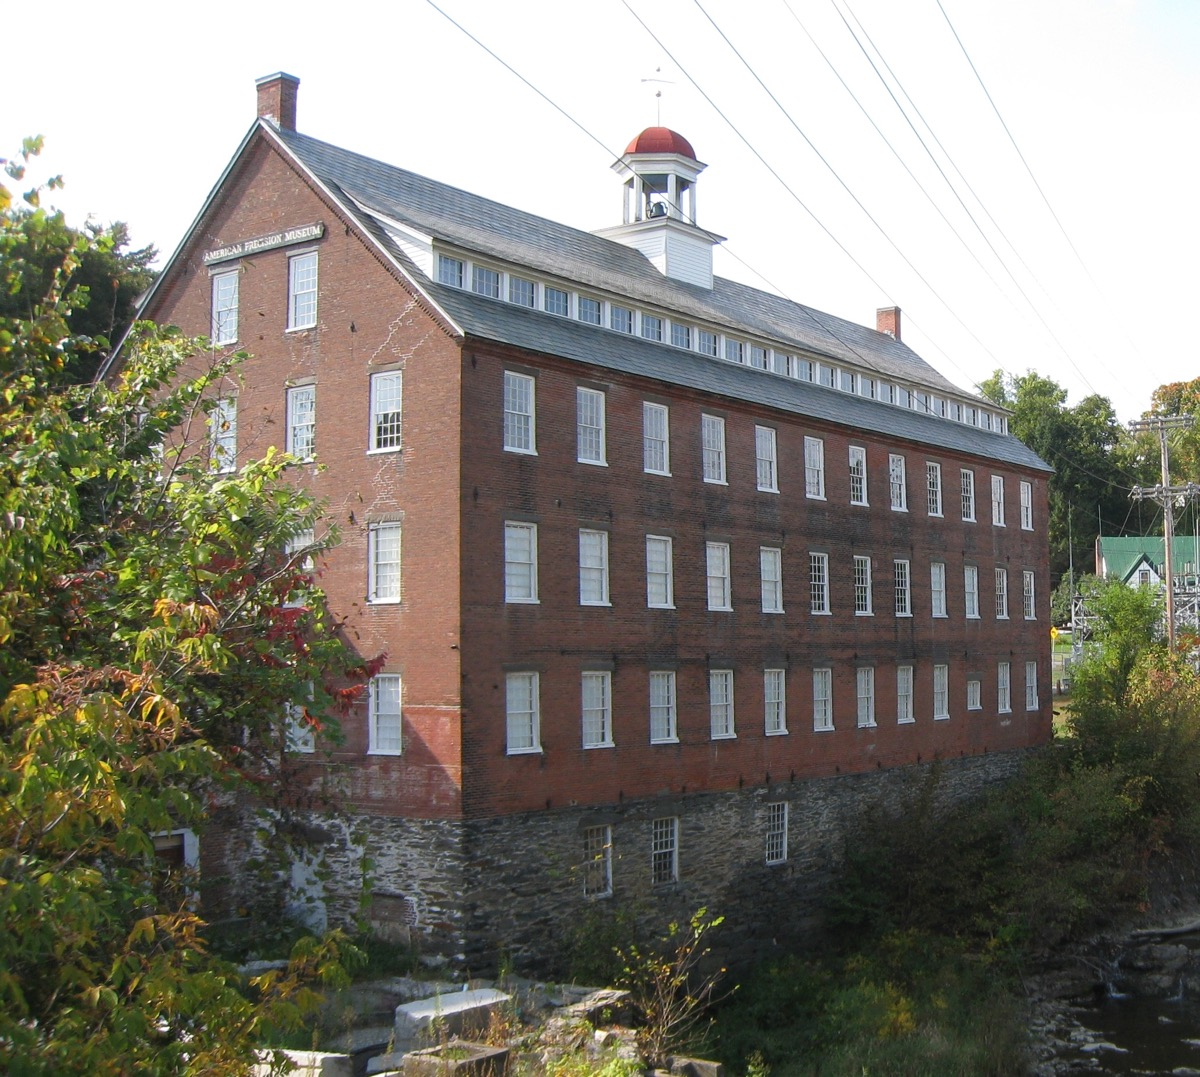 The American Precision Museum Houses The History Of Vermont's Machine Tool.